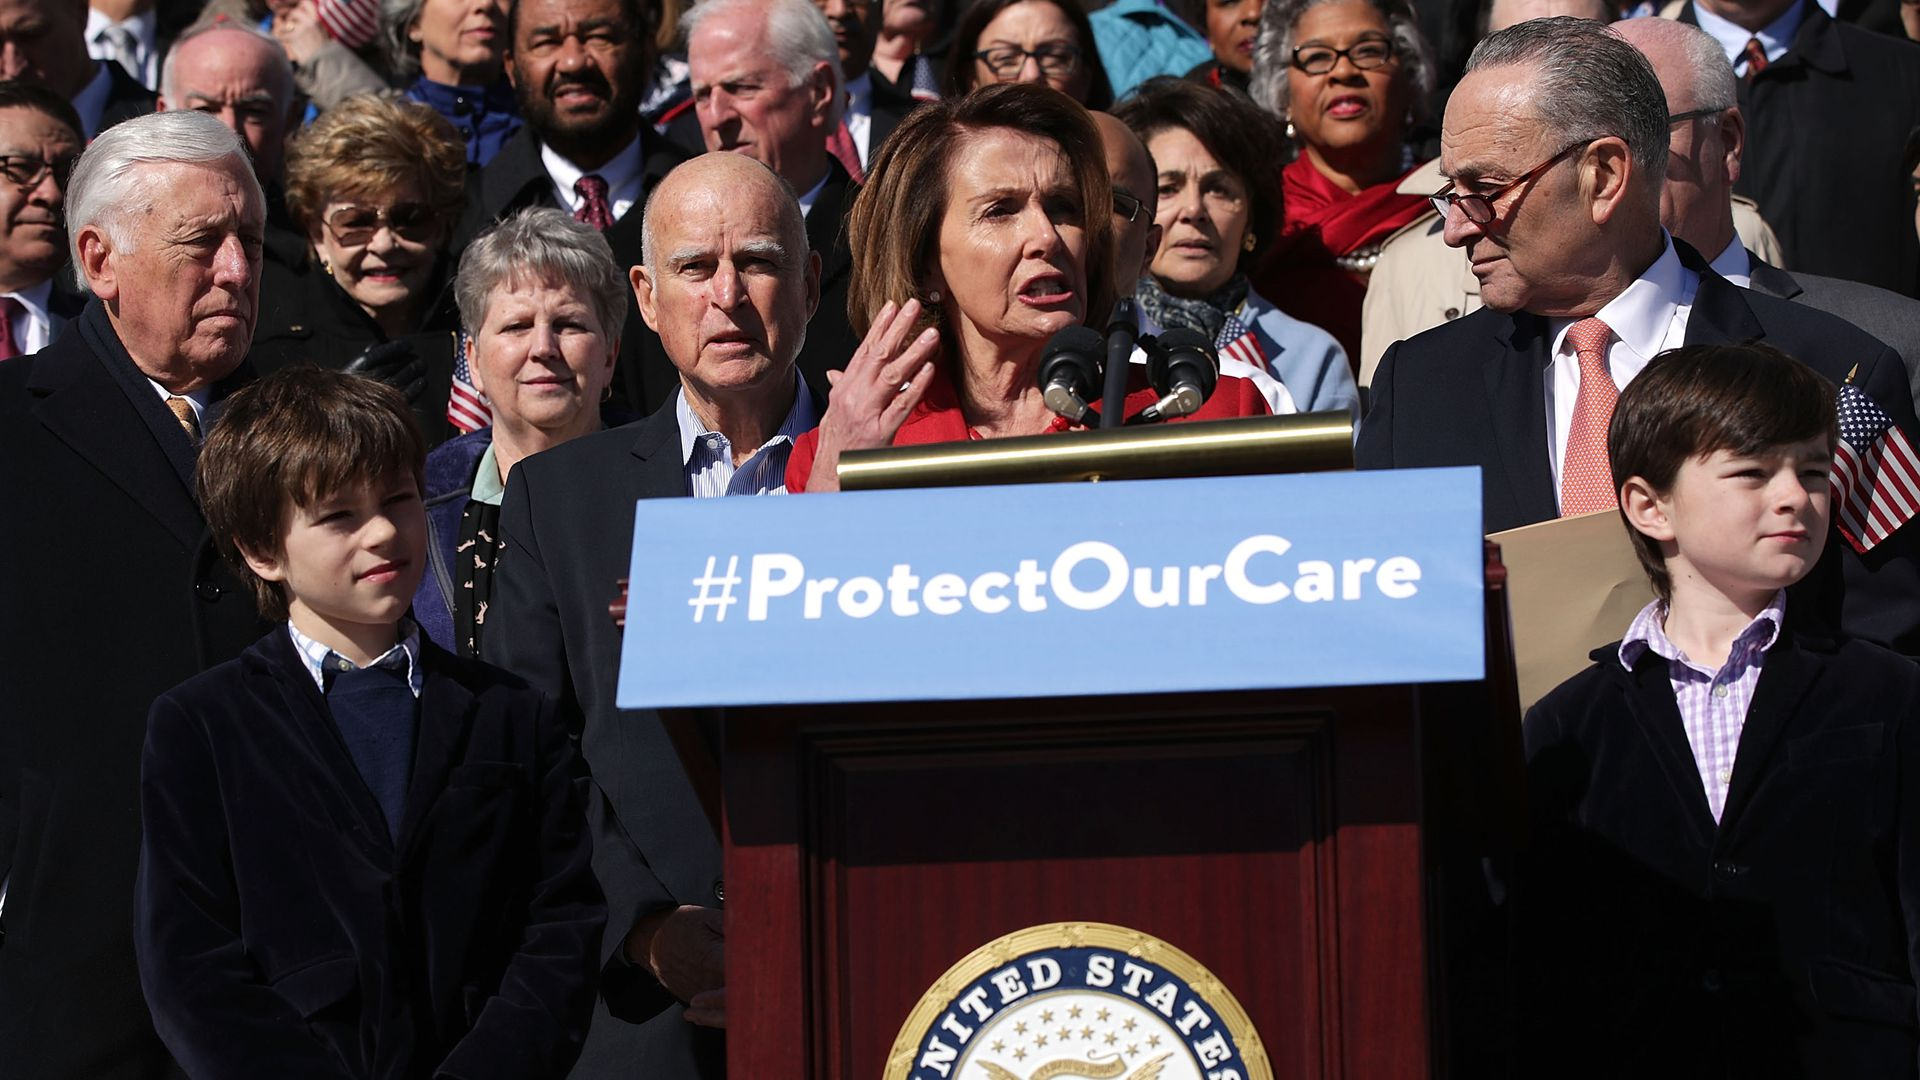 "In this image, Nancy Pelosi stands outside with a crowd of lawmakers behind her, at a podium with a sign that reads ""#ProtectOurCare."""